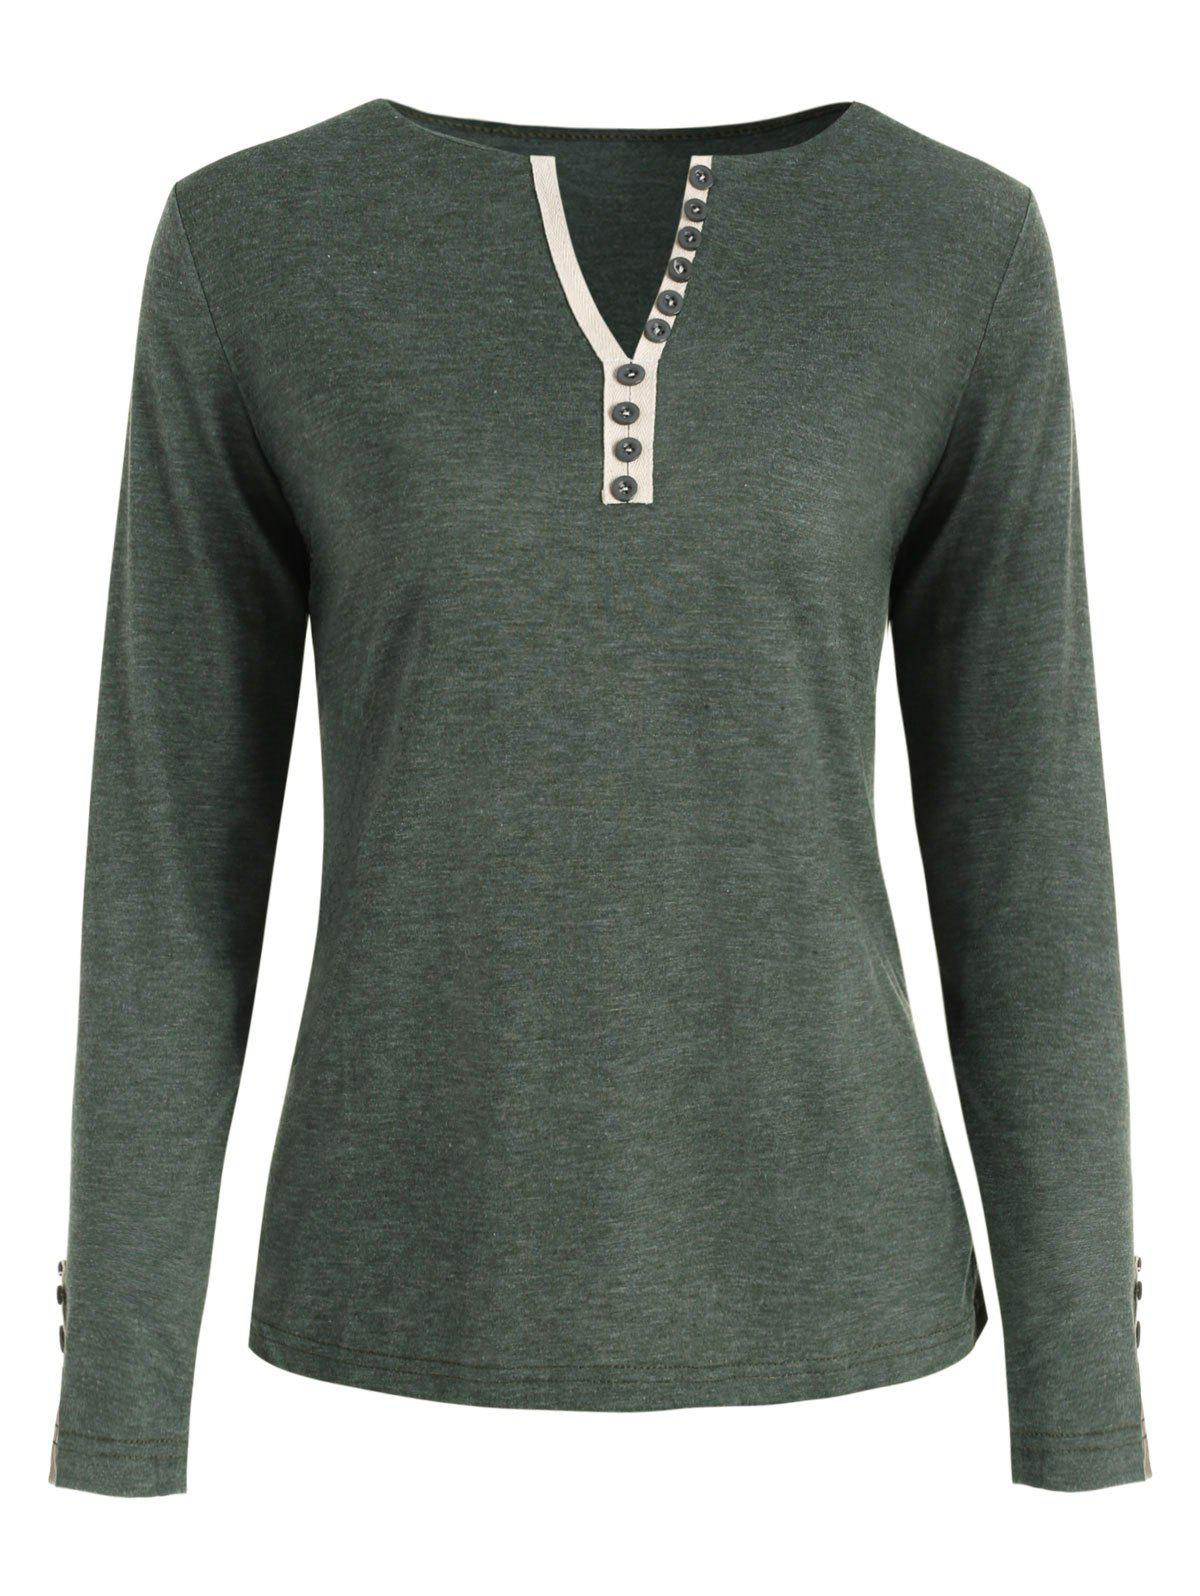 Unique V Neck Long Sleeve Button Embellished T-shirt